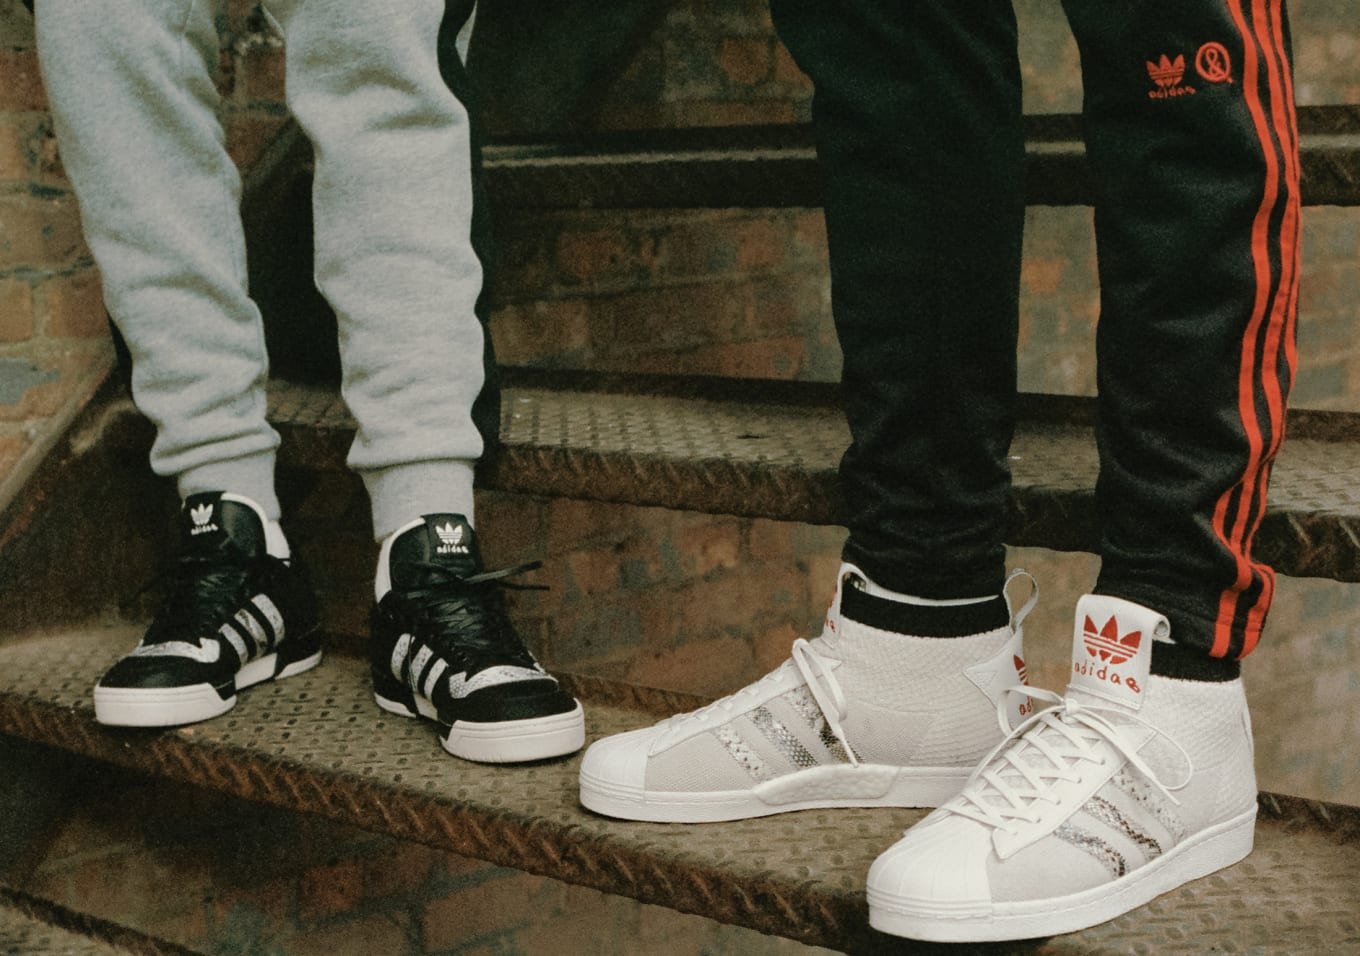 competitive price 52180 d71d8 United Arrows and Sons x Adidas Ultra Star B37111 Rivalry Low B37112 ...